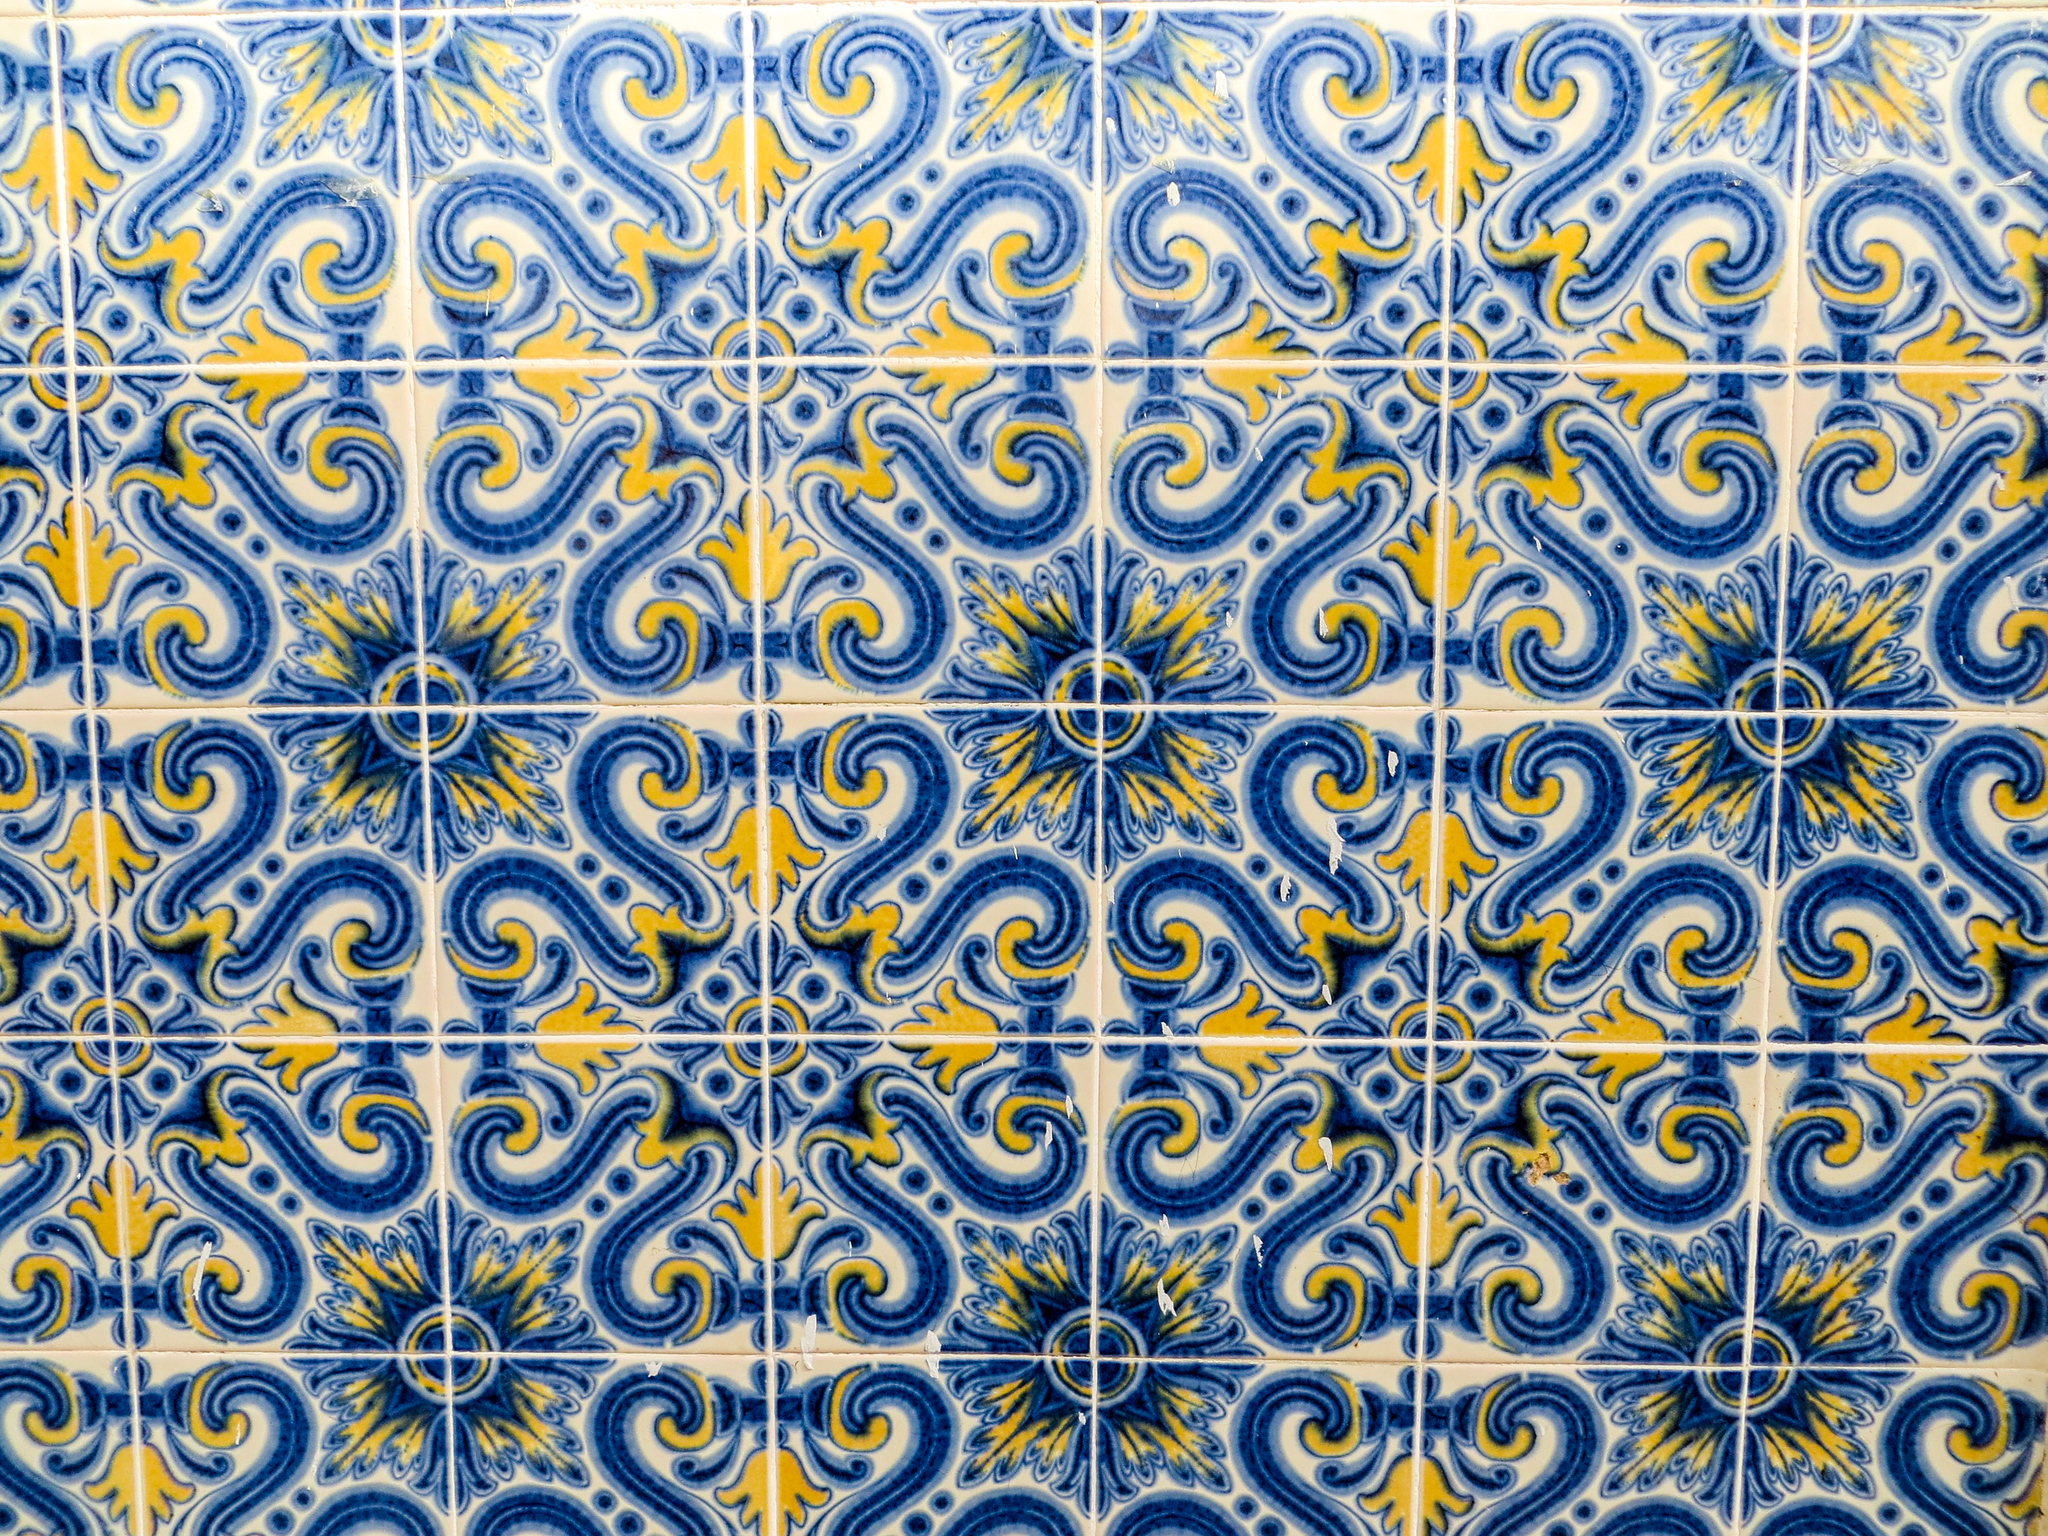 what to see in lisbon in 2 days includes plenty of gorgeous tile